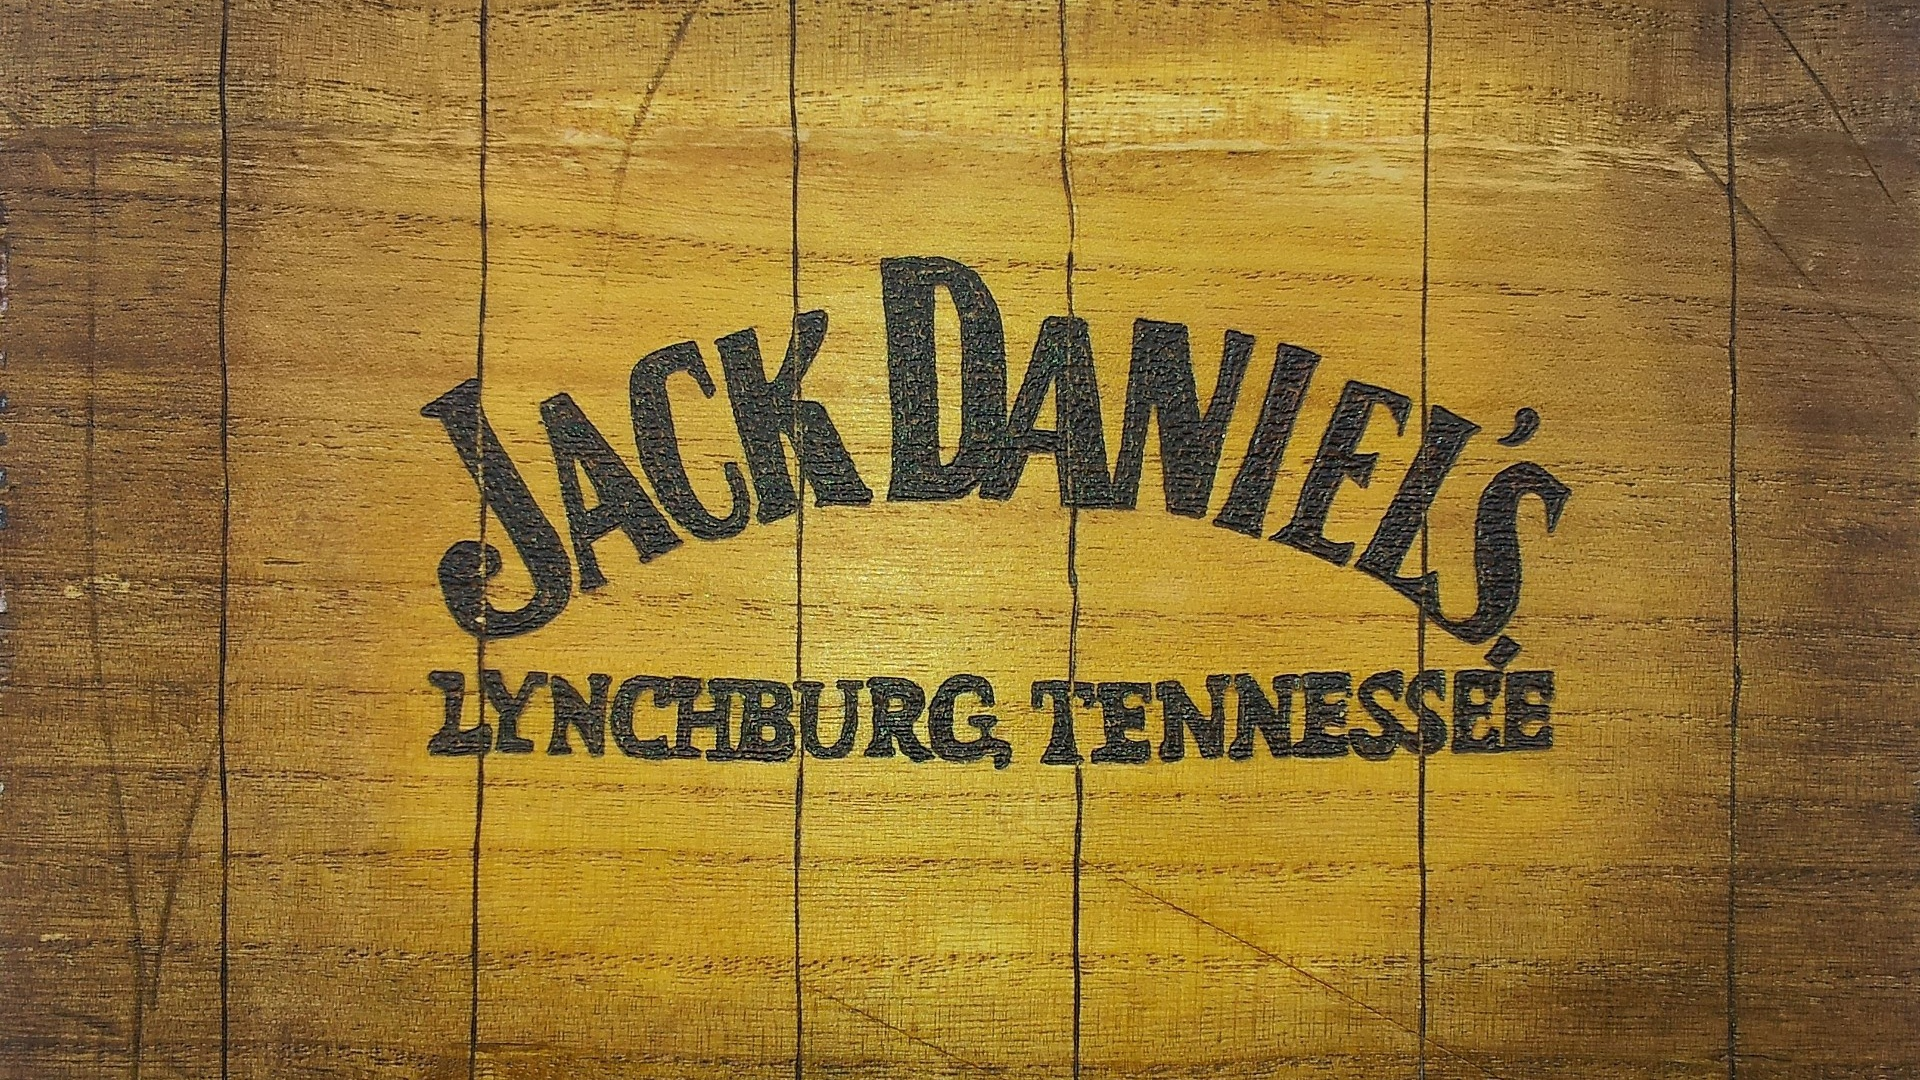 Jack daniels full hd wallpaper and background image 1920x1080 products jack daniels wallpaper voltagebd